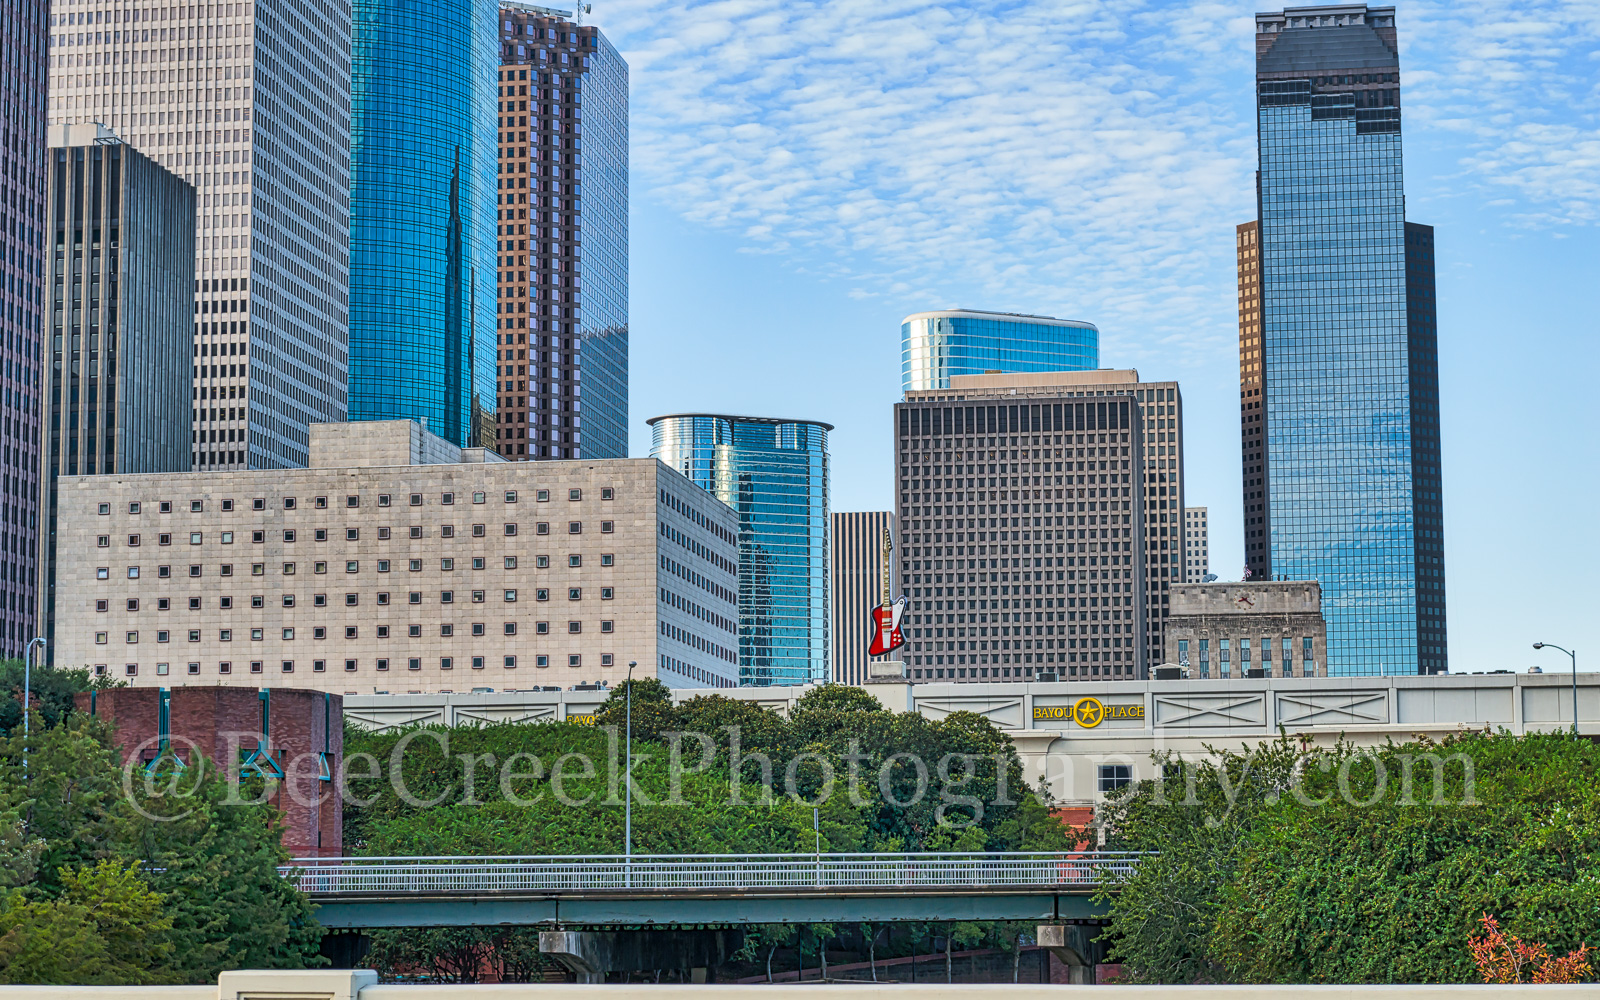 Houston, hard rock cafe, guitar, skyscrapers, city, cityscape, downtown, urban, red, Heritage Plaza, Wortham Theater, city hall, Theater district, buffalo bayou, , photo